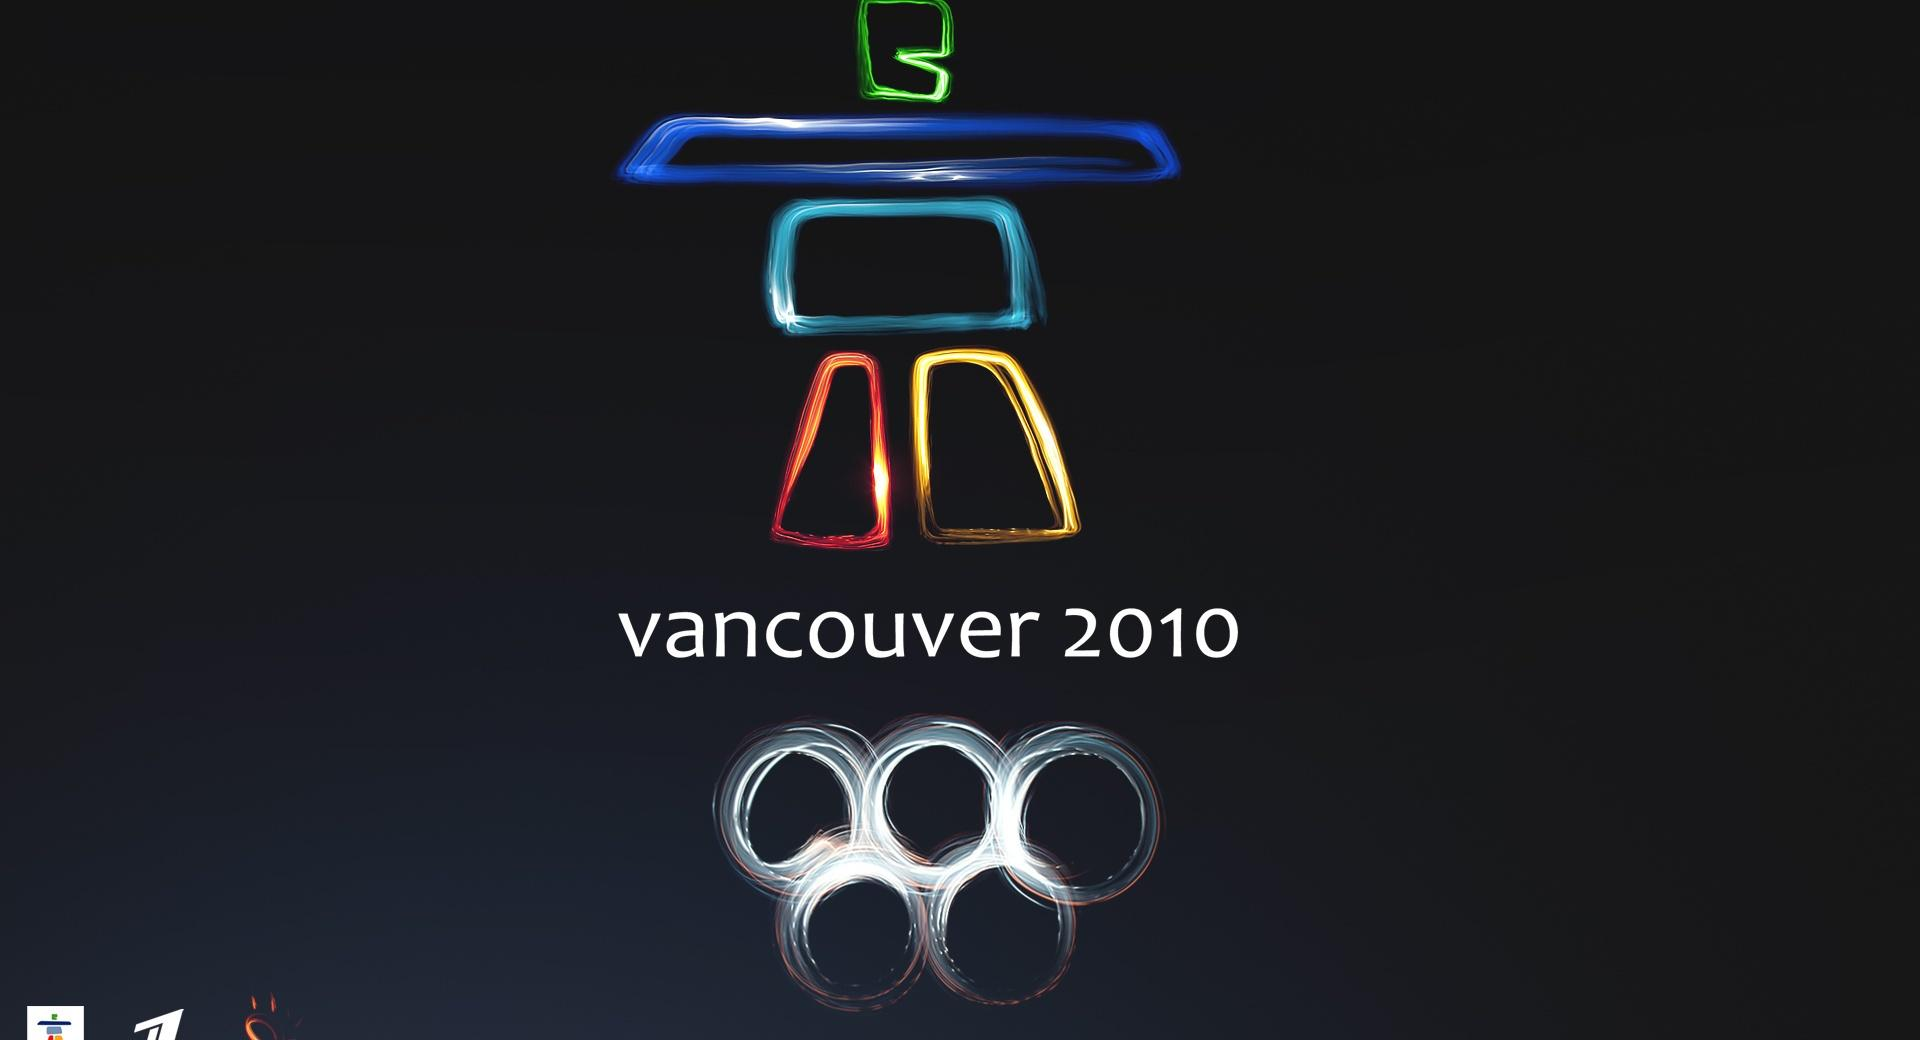 2010 Olympic Winter Games In Vancouver wallpapers HD quality